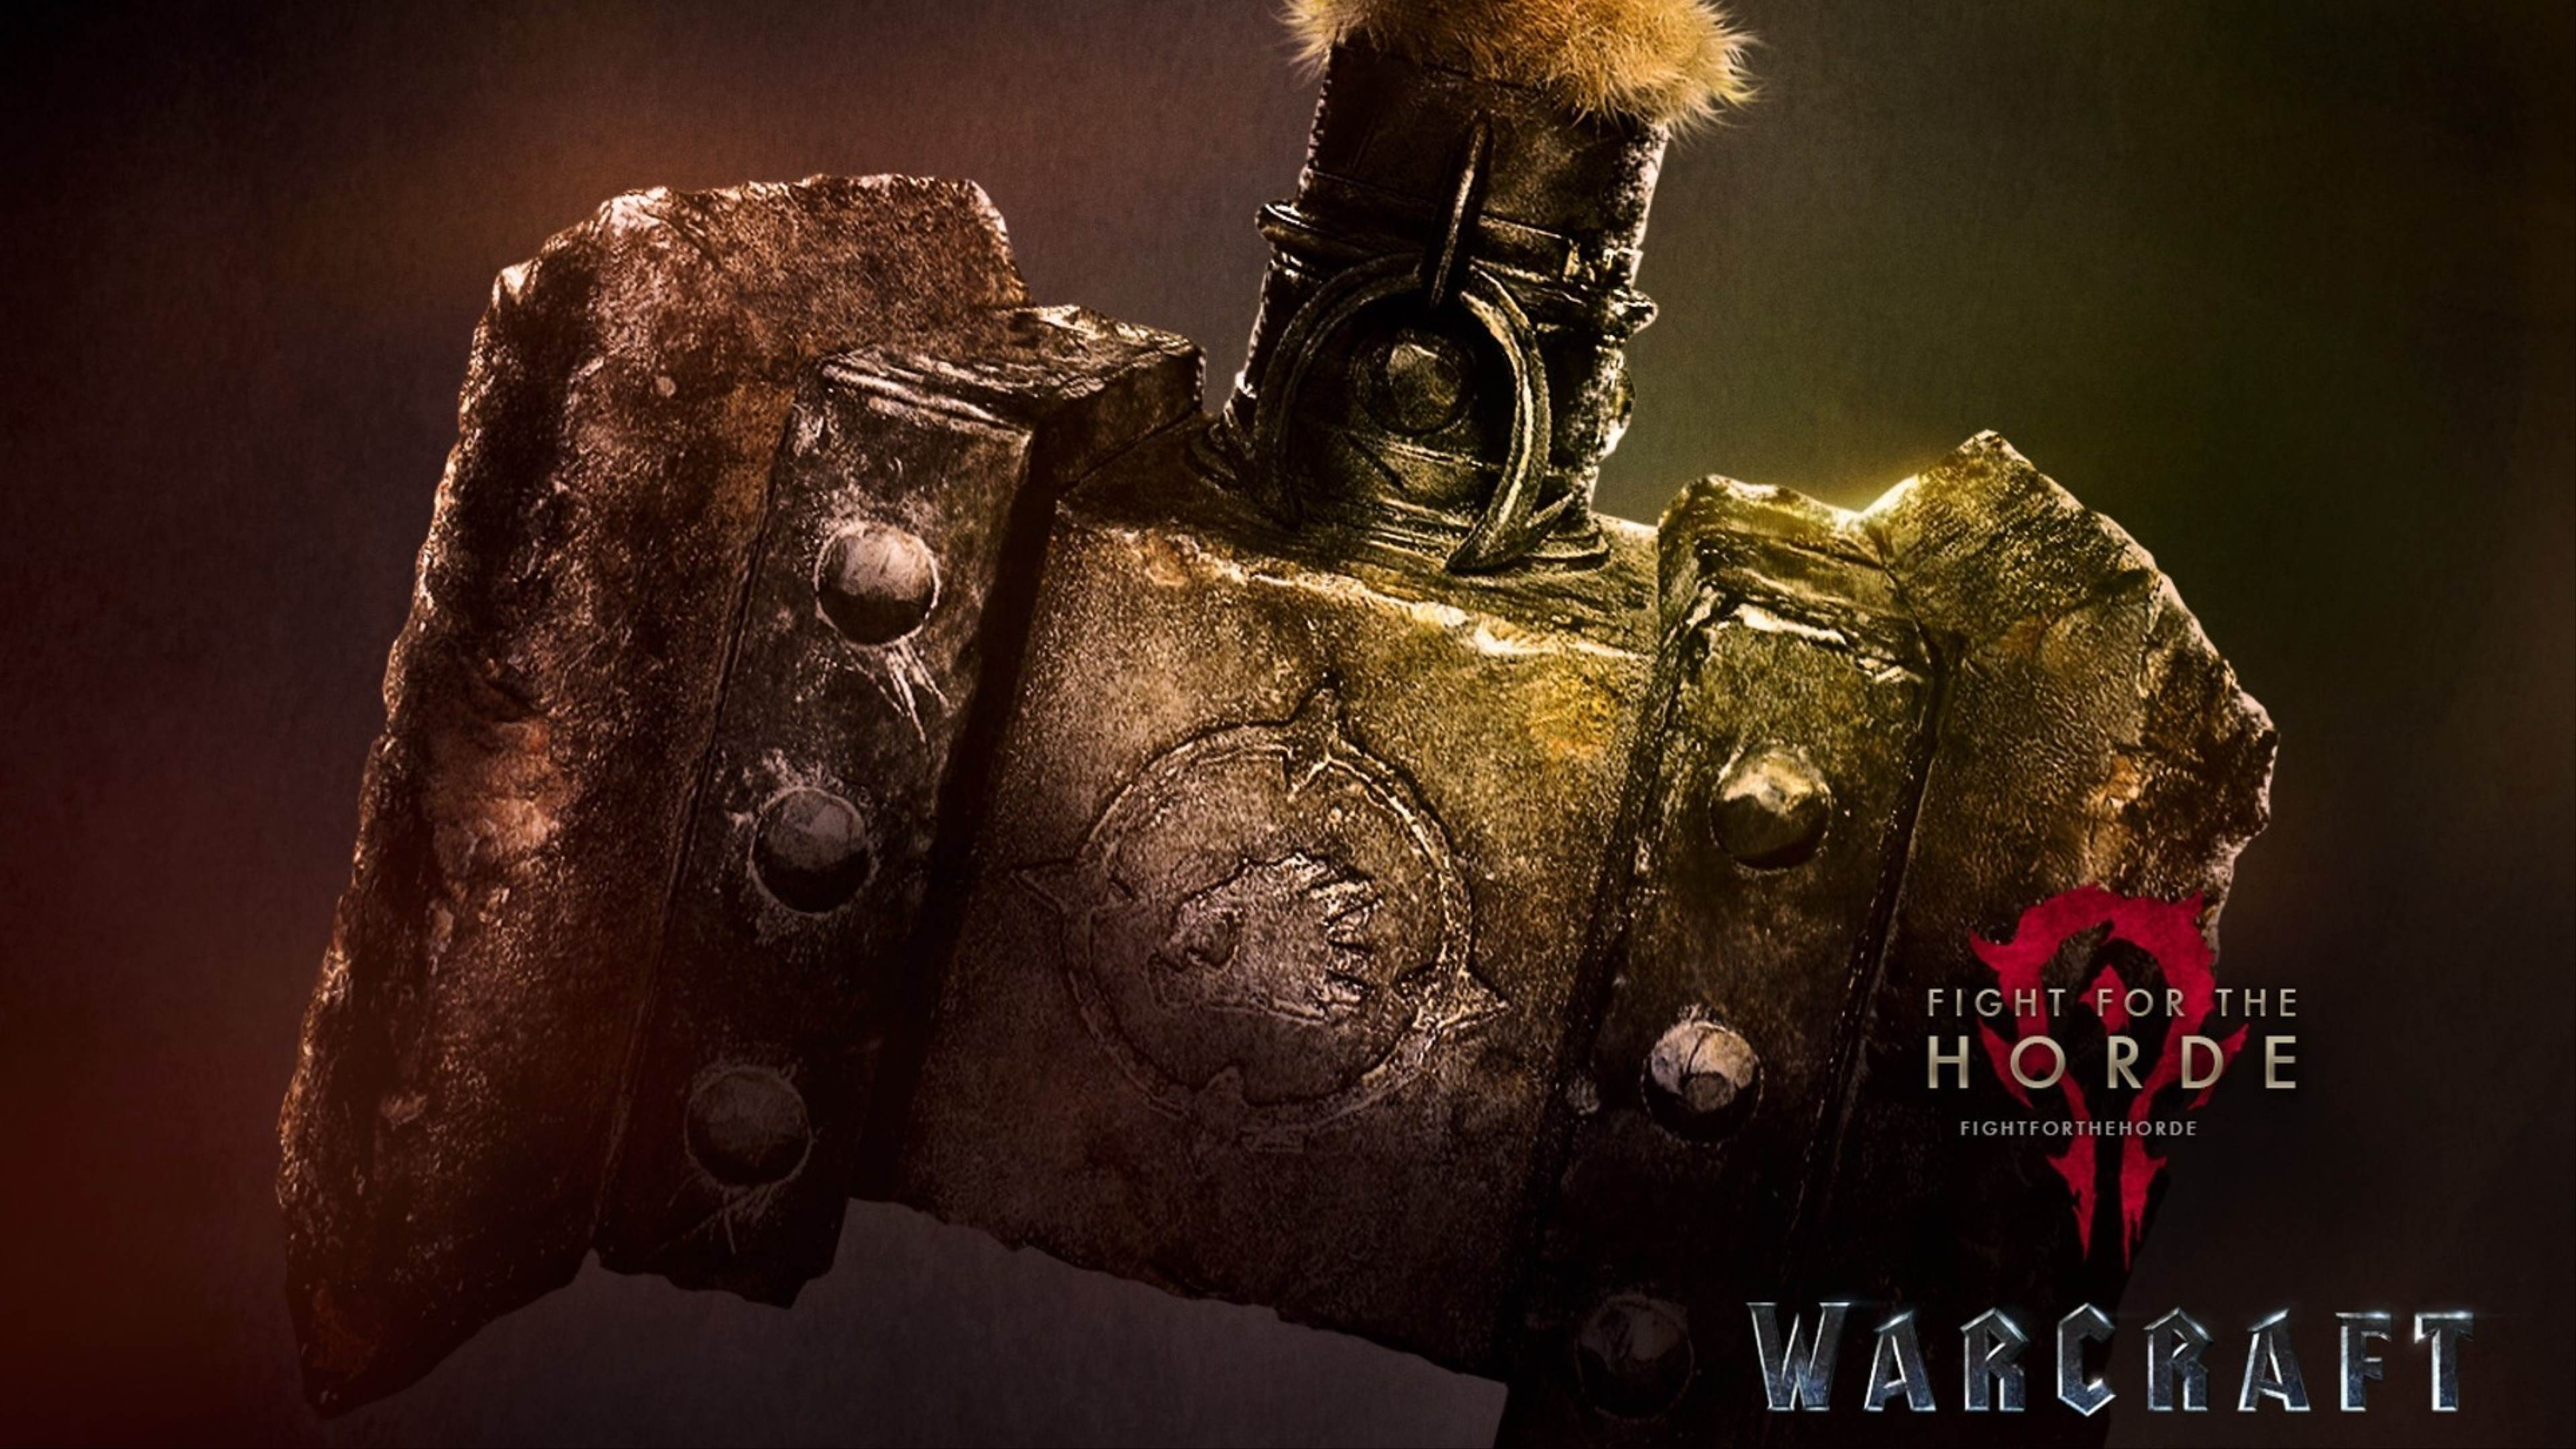 Horde Warcraft 2016 Hd Movies 4k Wallpapers Images